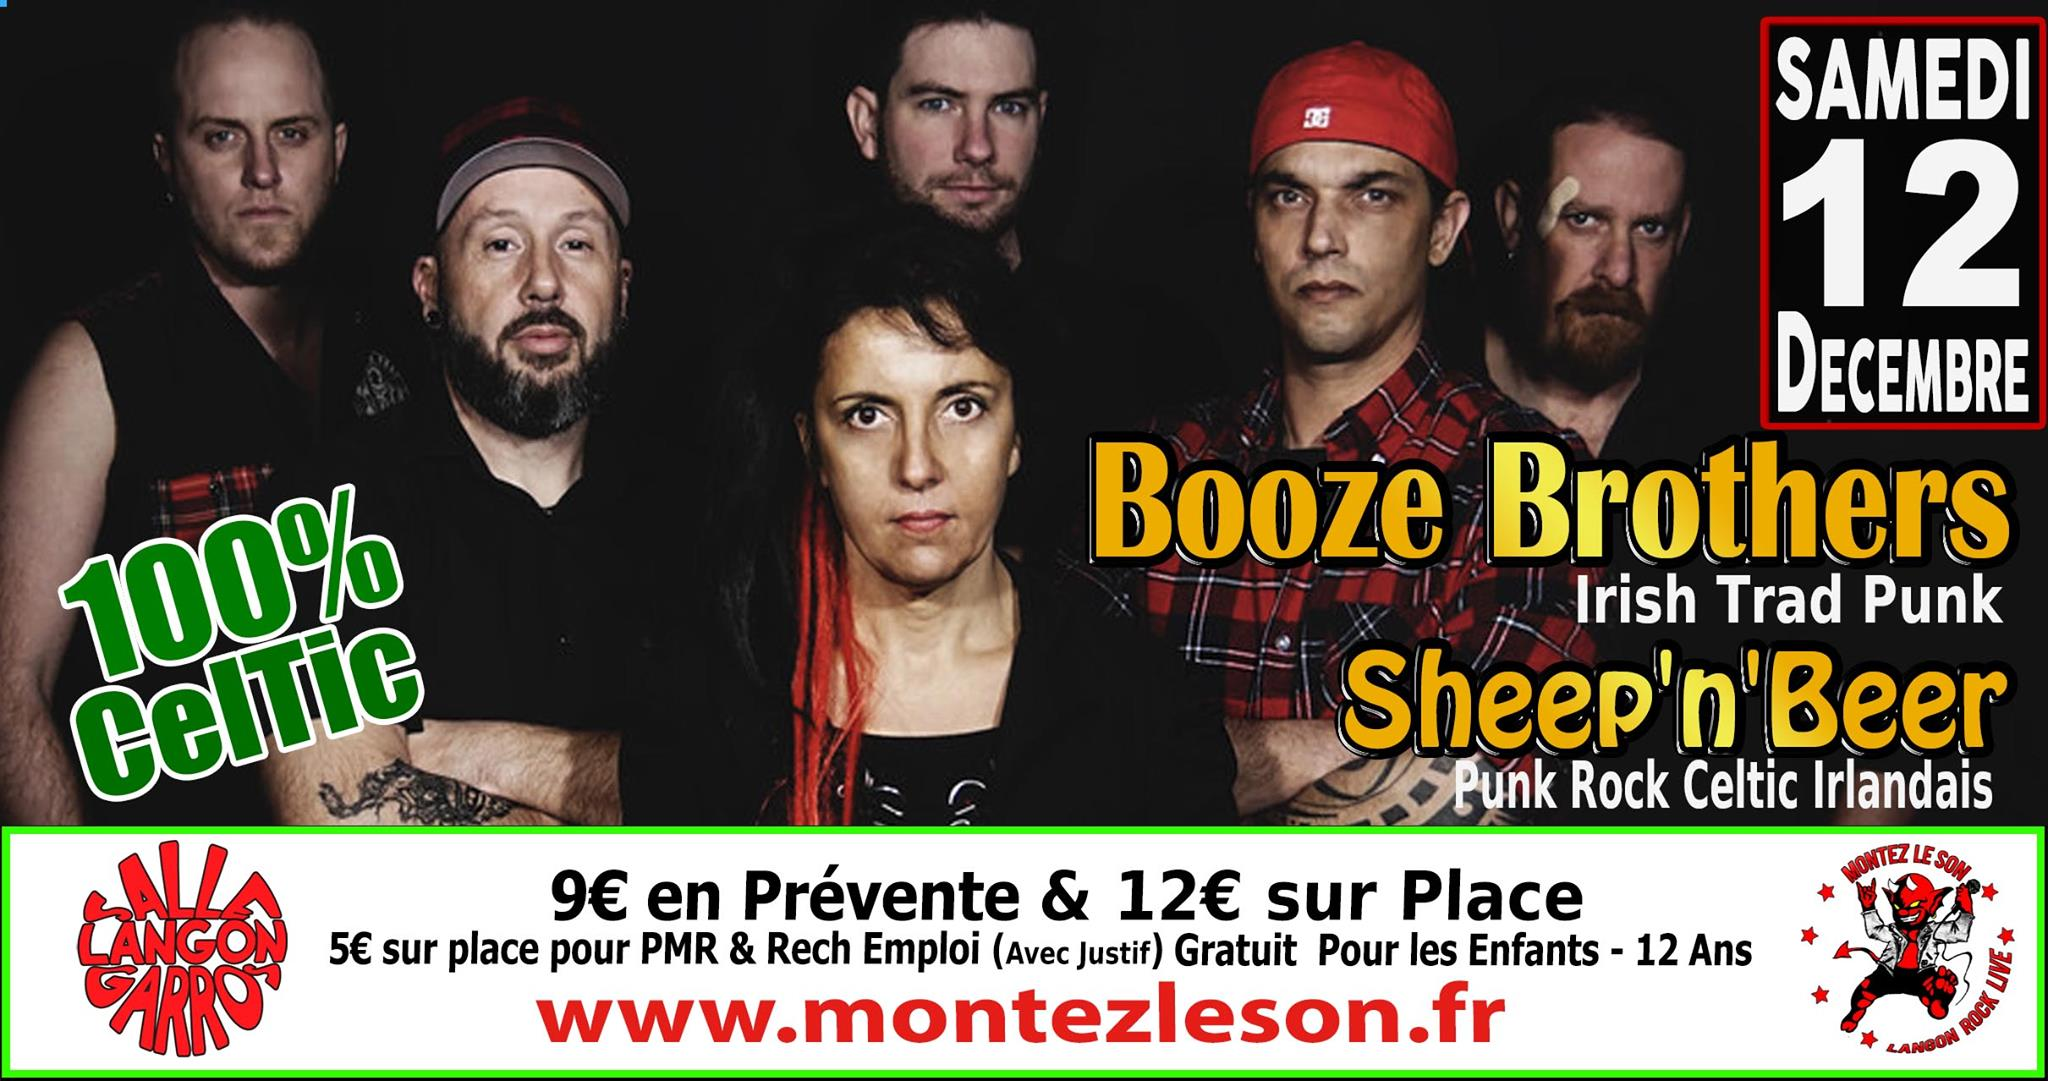 https://the-place-to-be.fr/wp-content/uploads/2020/10/booze-brothers-montez-le-son-langon-2020-cbc4cb2a.jpg